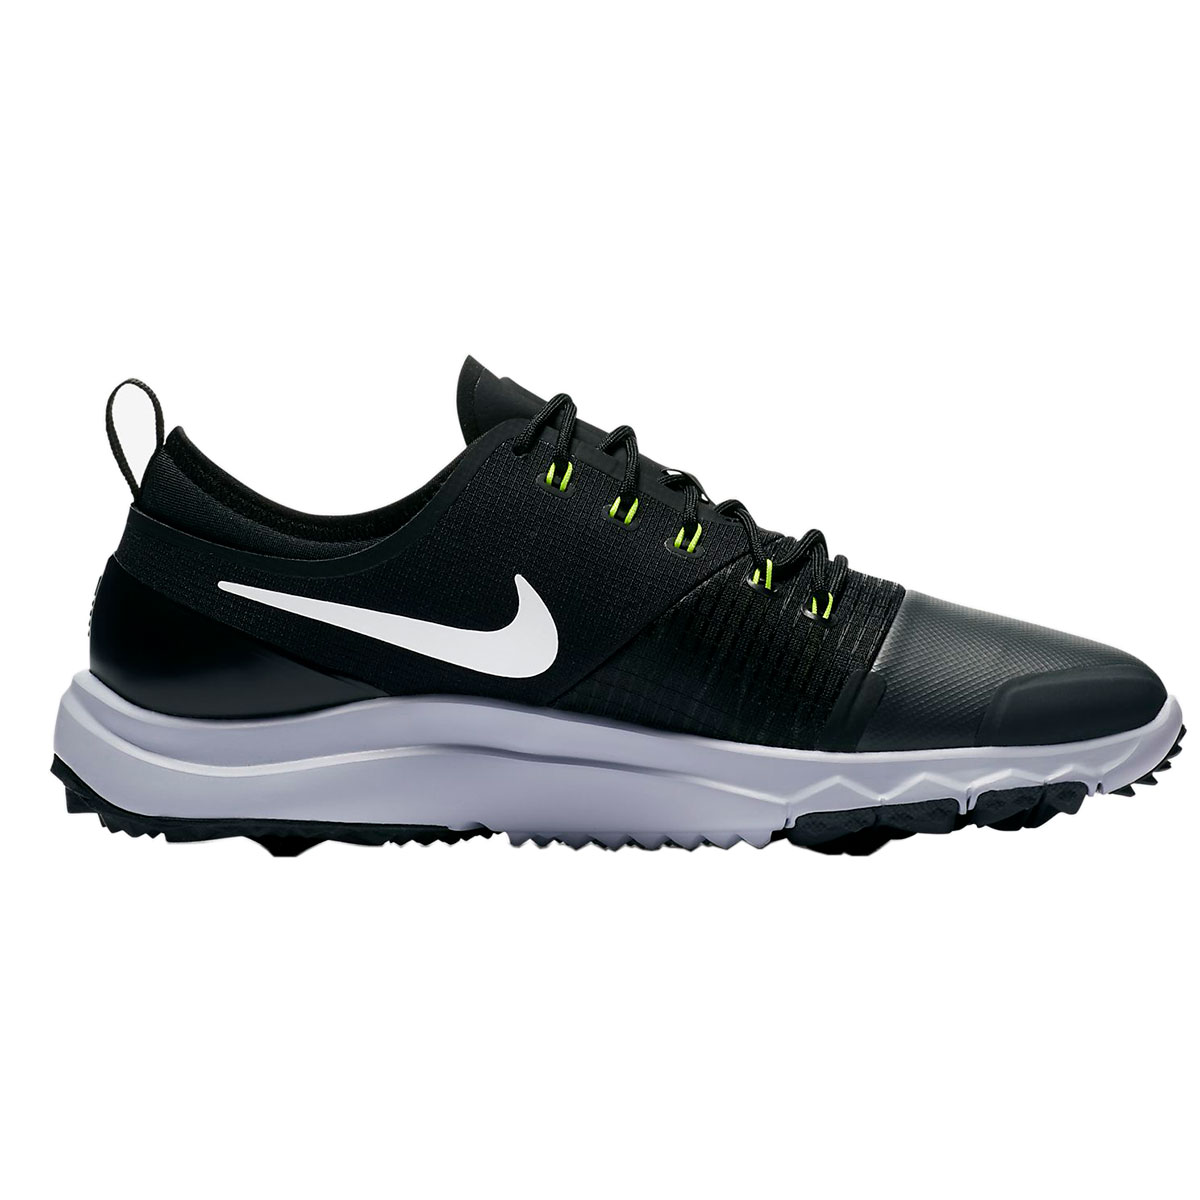 602f4bc2ee71 Nike Golf FI Impact 3 Ladies Shoes from american golf